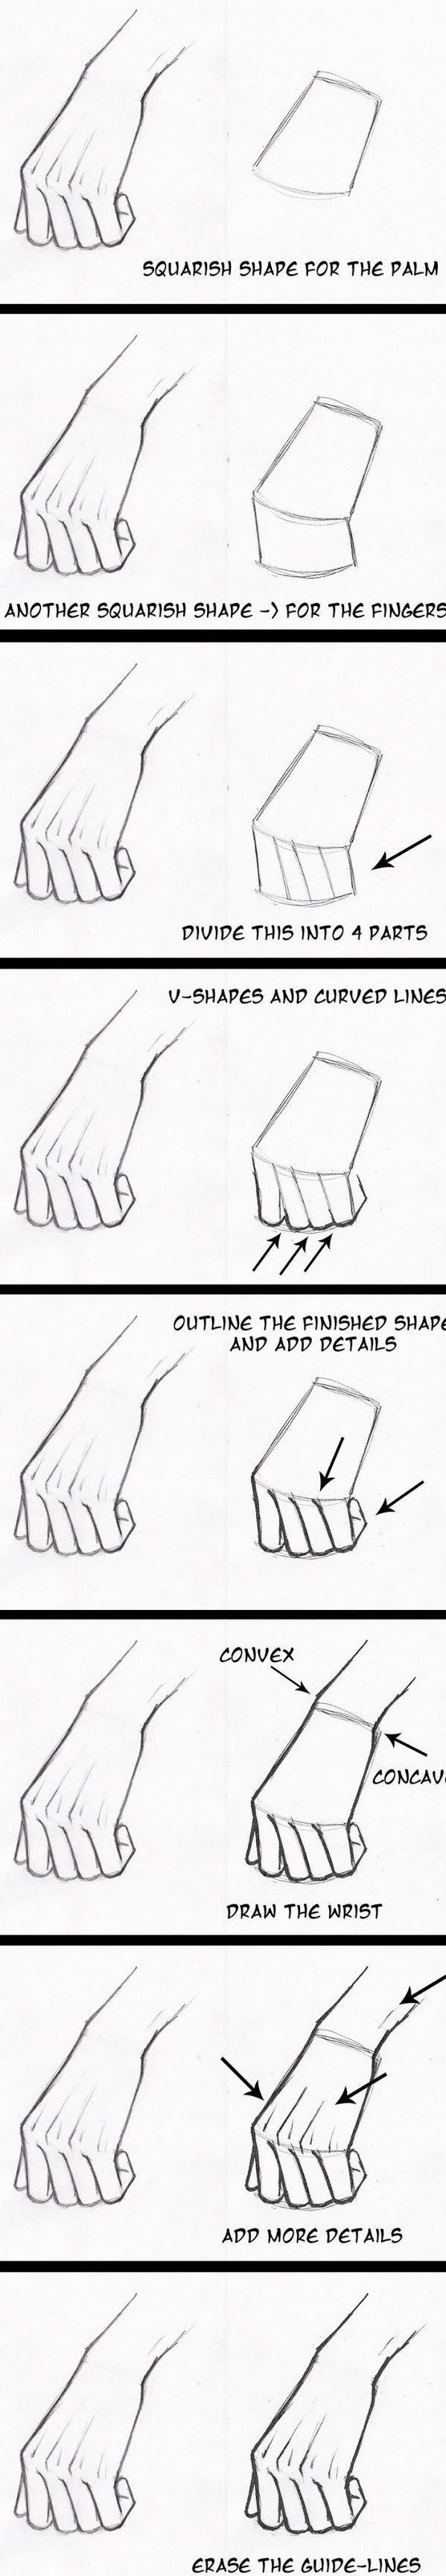 20 Easy Drawing Tutorials for Beginners – Cool Things to Draw Step By Step